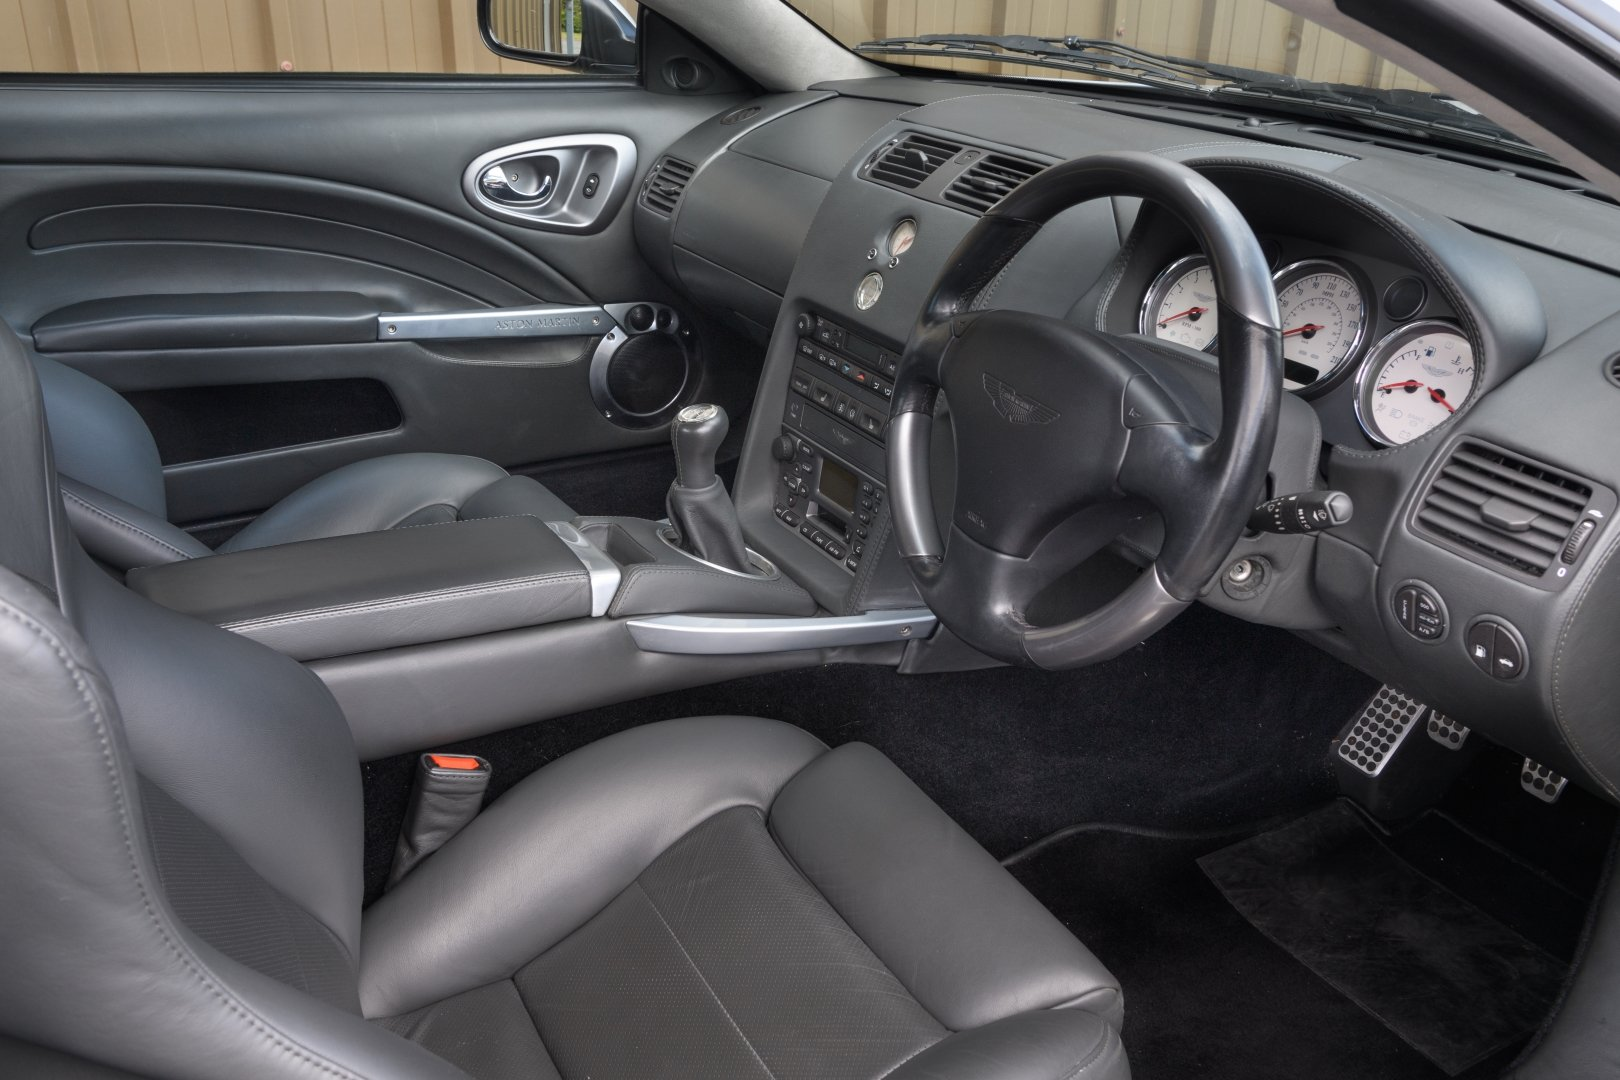 2005 Aston Martin Vanquish S - AM Works 6 Speed Manual  For Sale (picture 3 of 6)